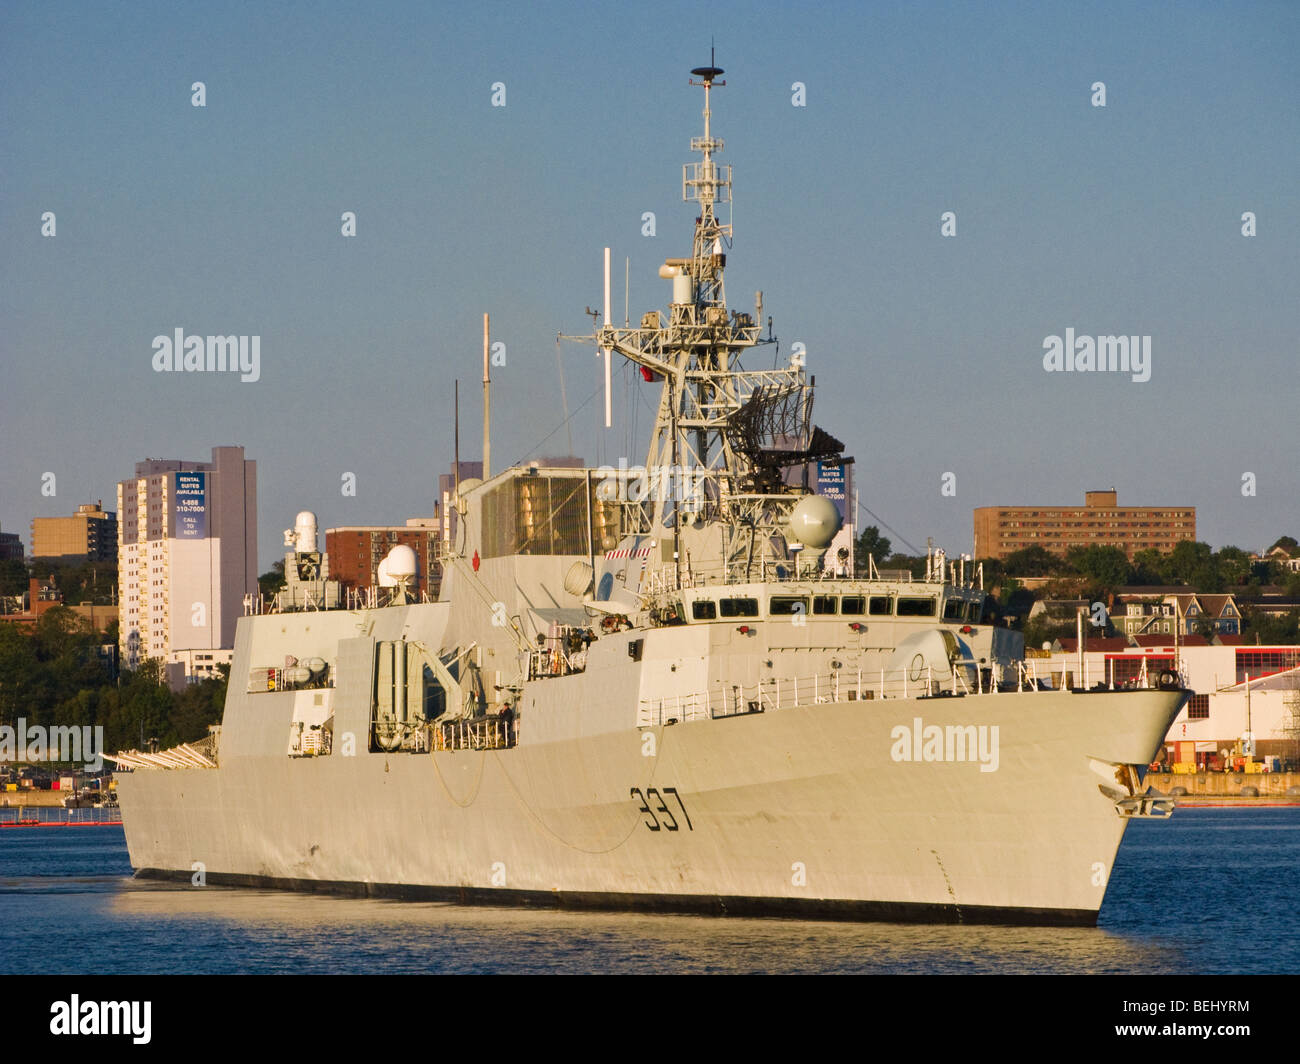 HMCS Fredericton in Halifax Harbour with HMC Dockyard in the background. - Stock Image